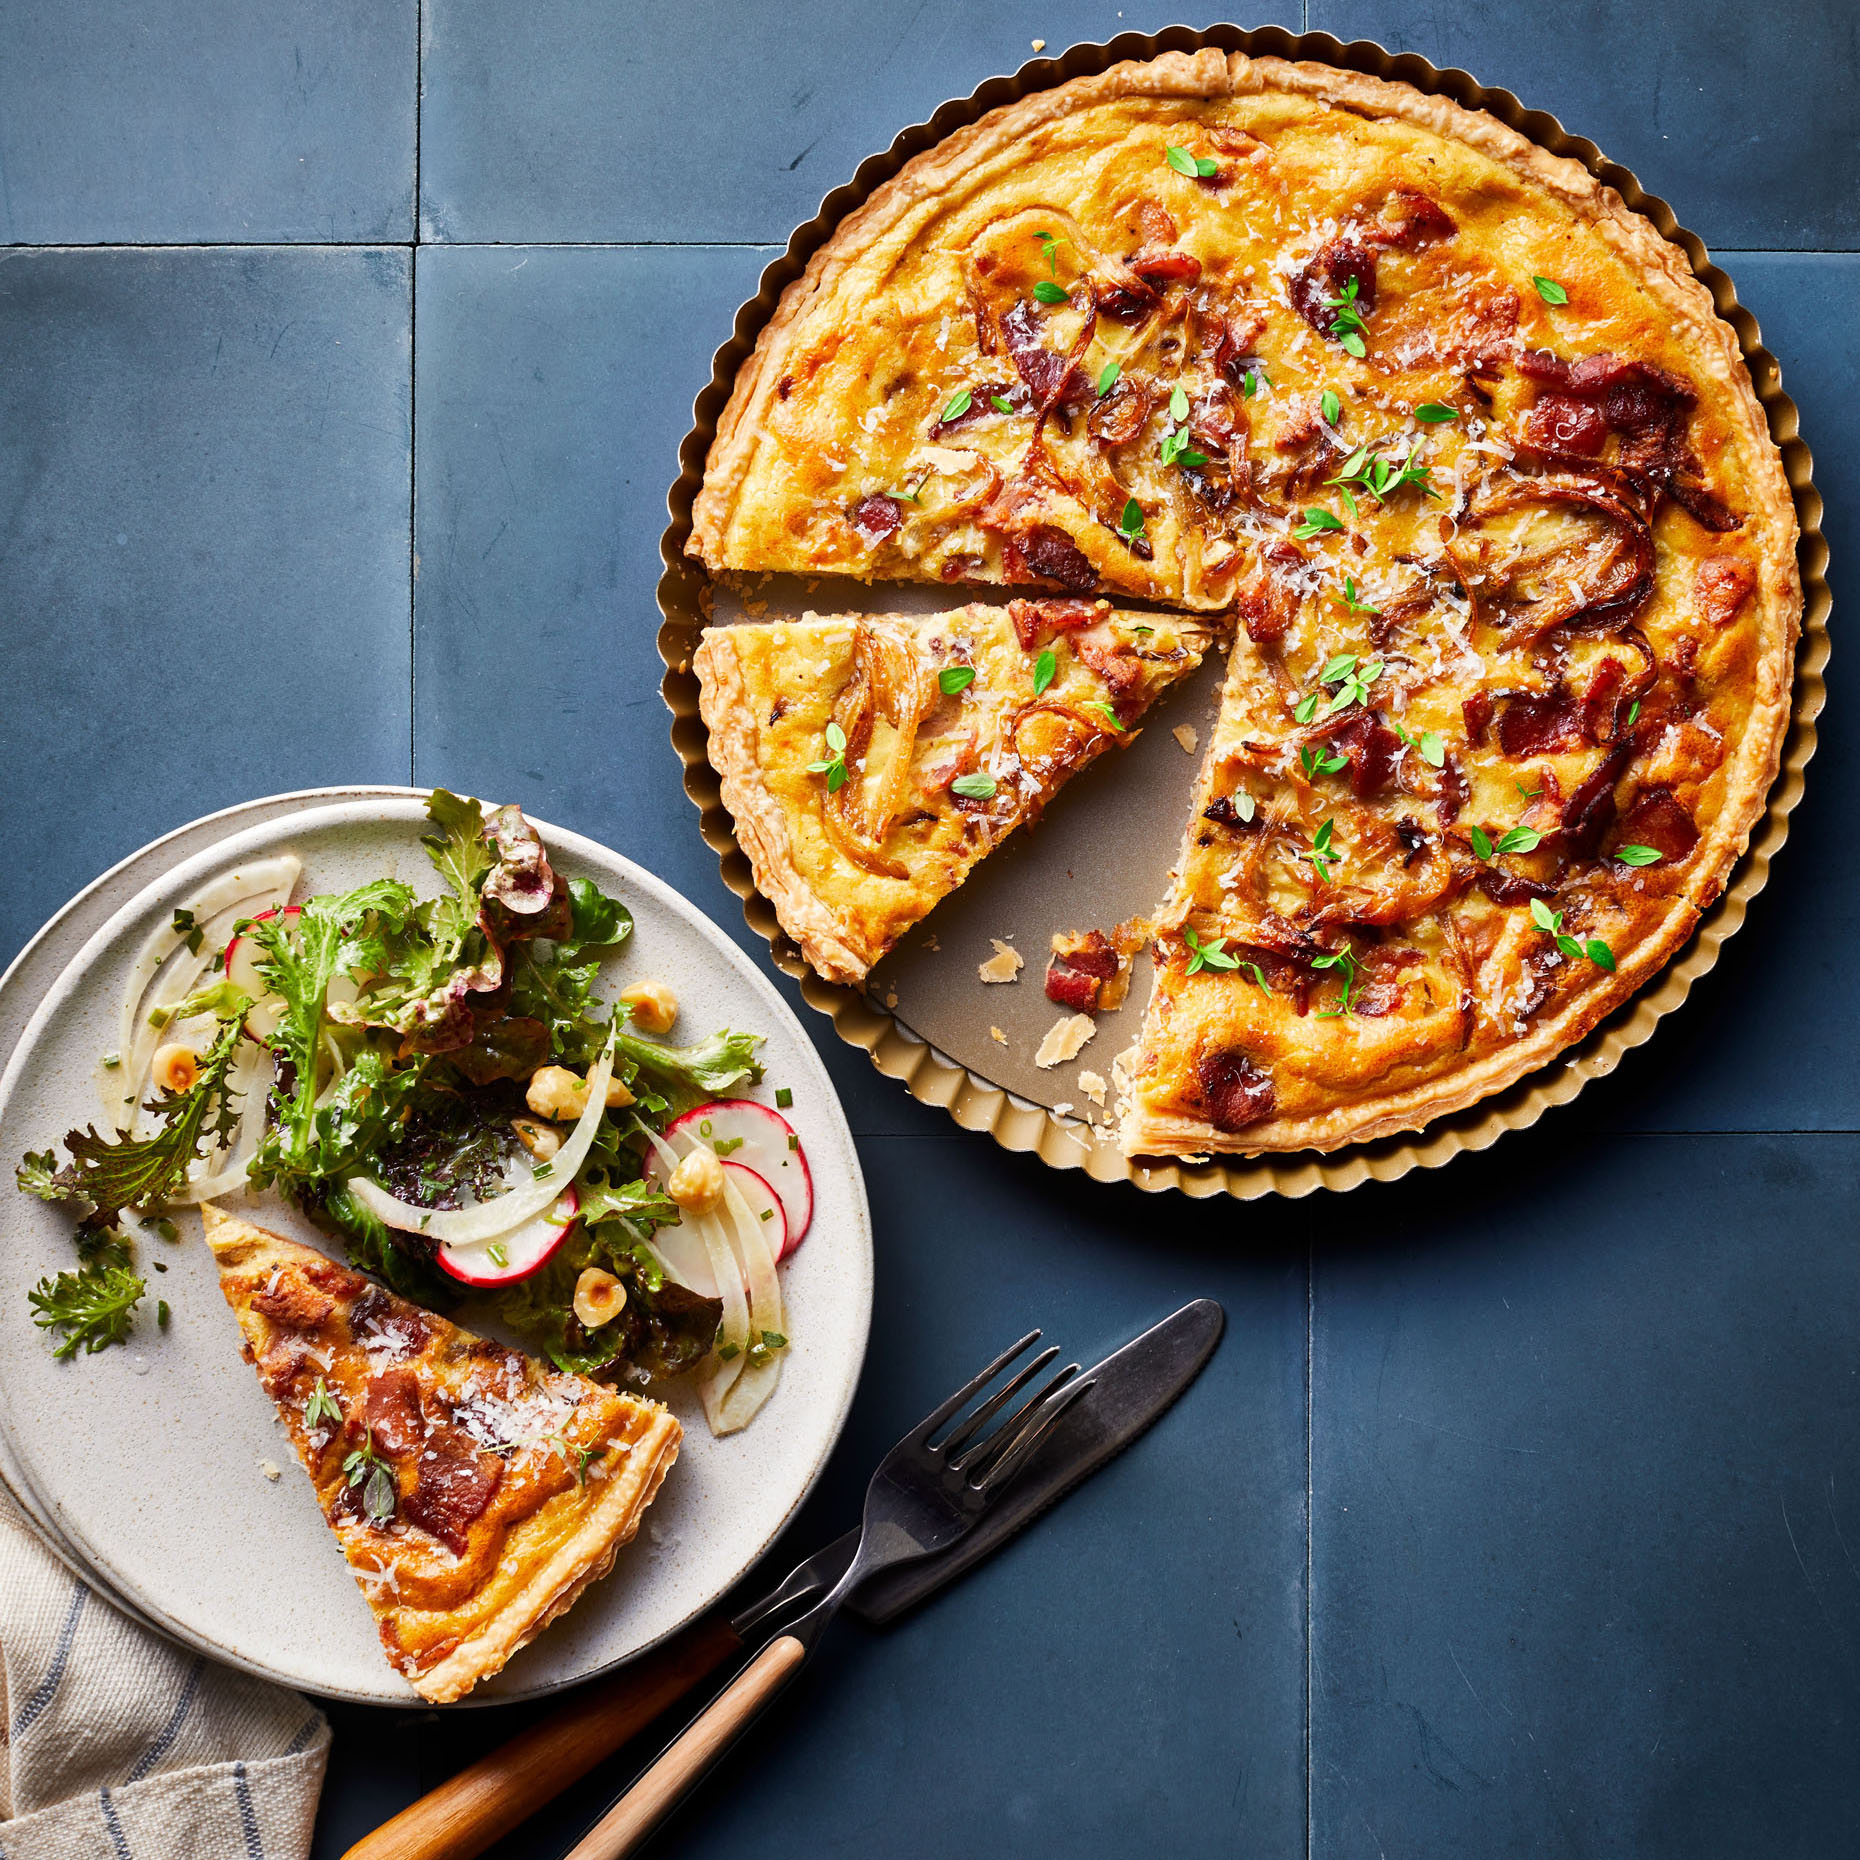 onion tart with bacon and mustard served with mixed greens